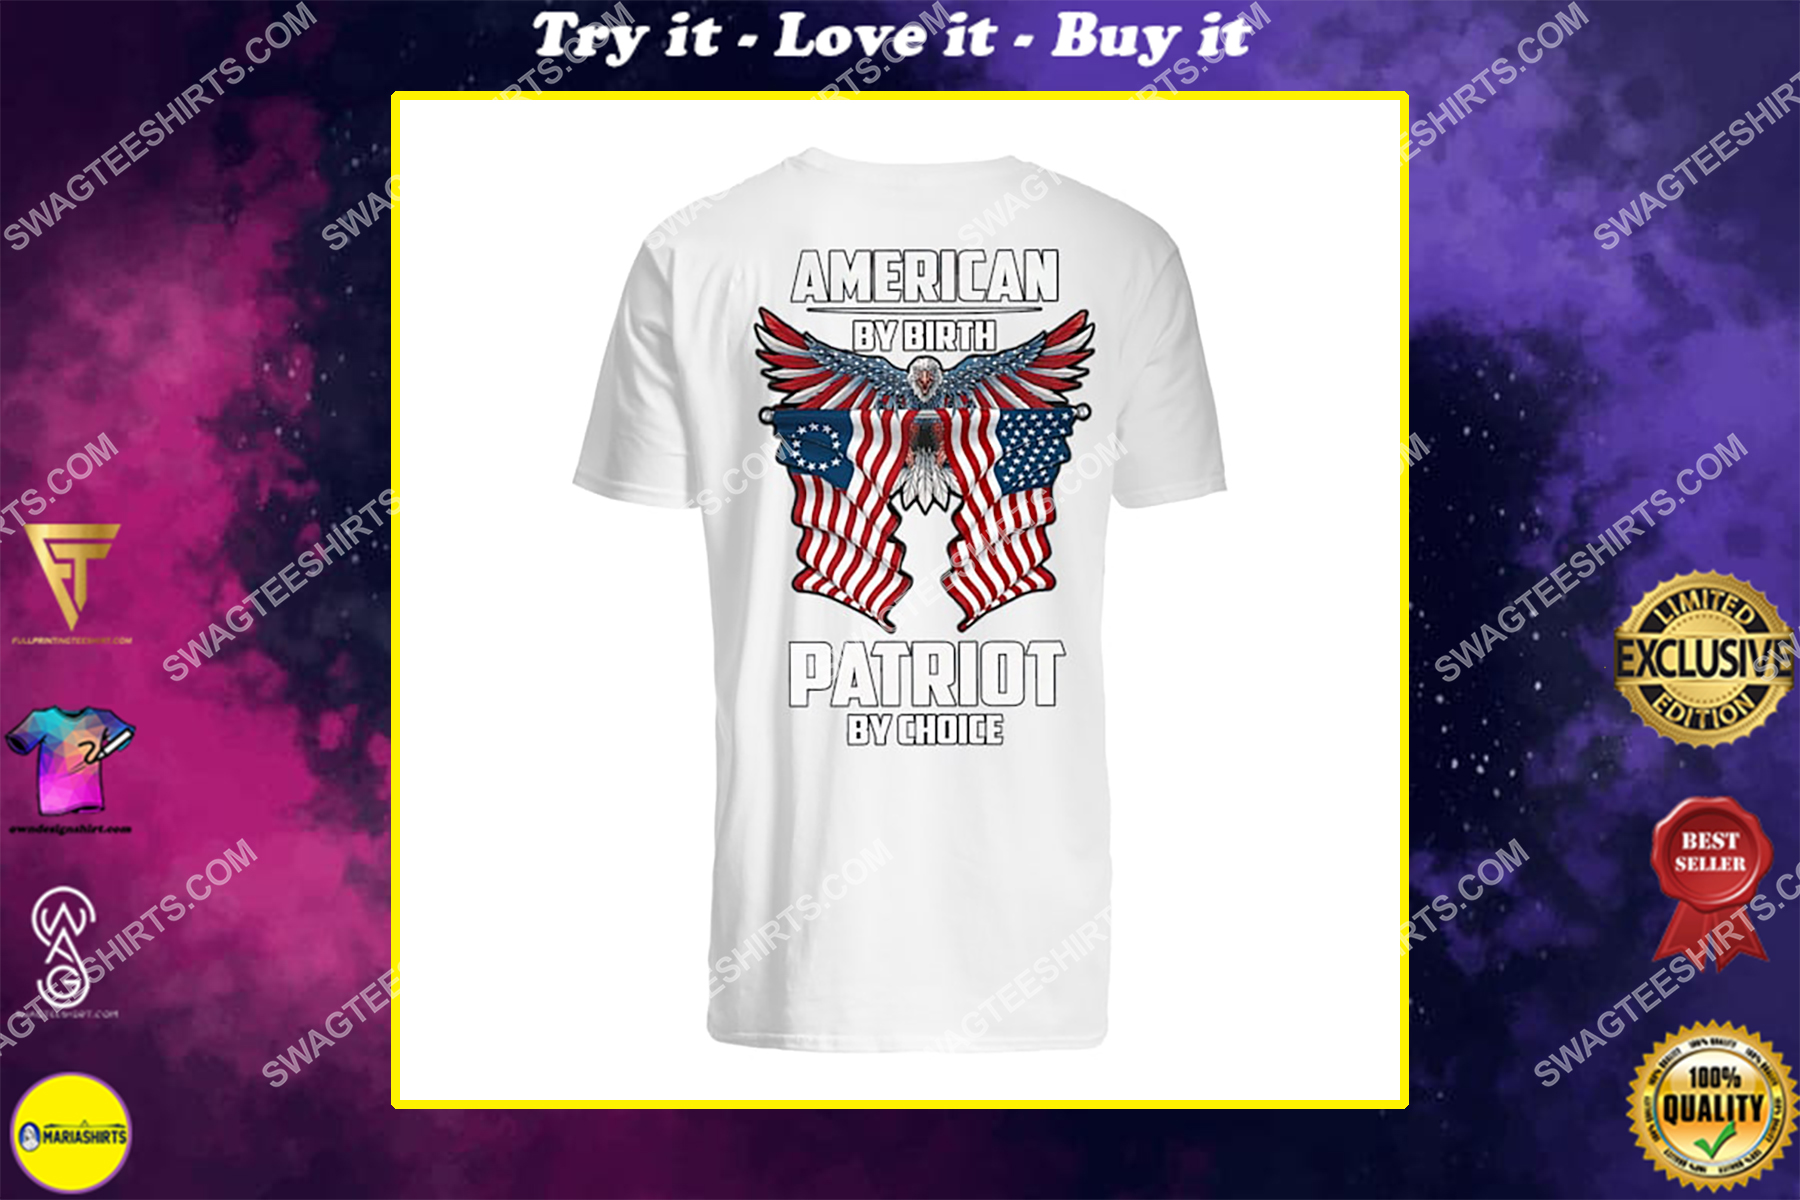 memorial day american by birth patriot by choice eagle shirt